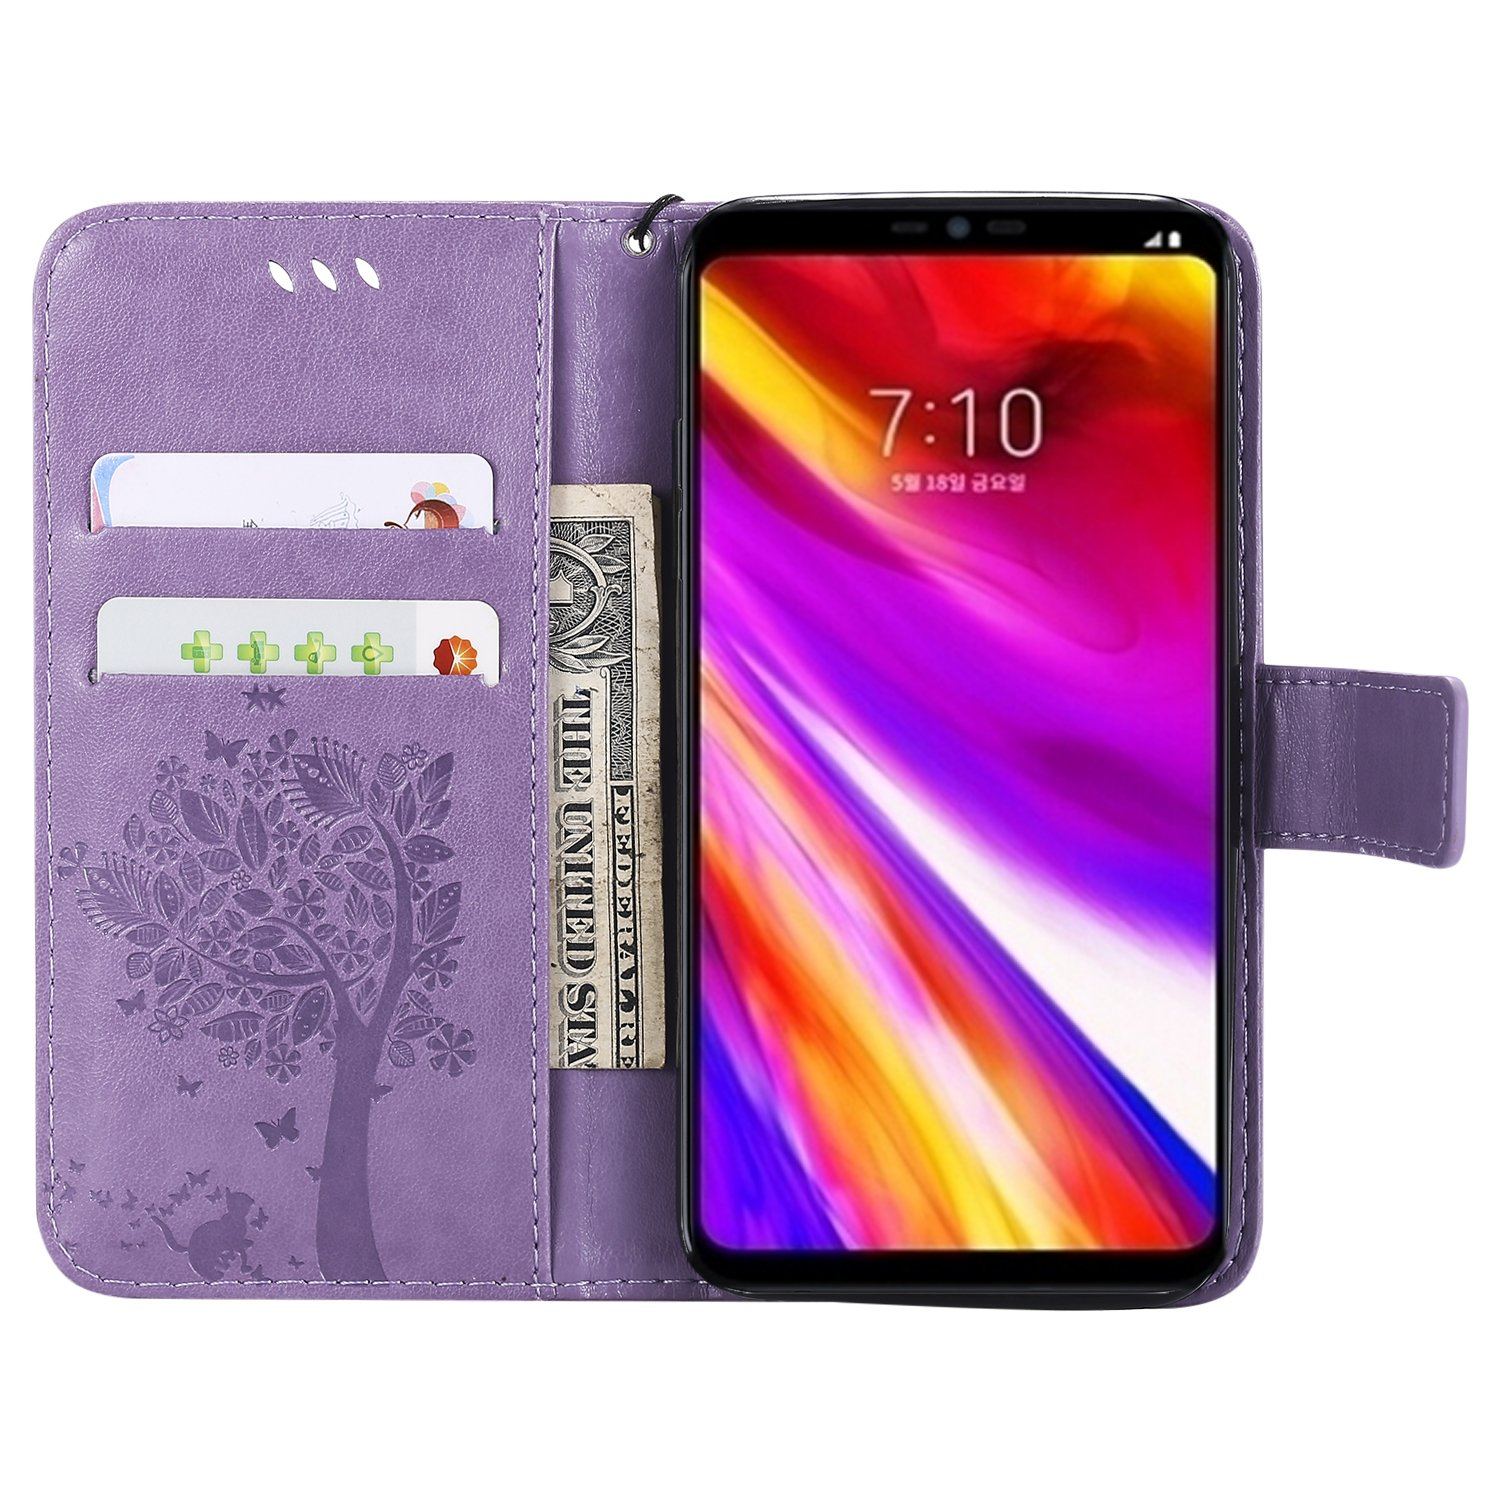 LG Aristo Case, LG Phoenix 3 Wallet Case,LG Fortune/K8 2017/LG Risio 2/LG Rebel 2 LTE Flip Case PU Leather Emboss Tree Cat Flower Folio Magnetic Kickstand Cover with Card Slots for LG LV3 Light Purple by NOMO (Image #2)